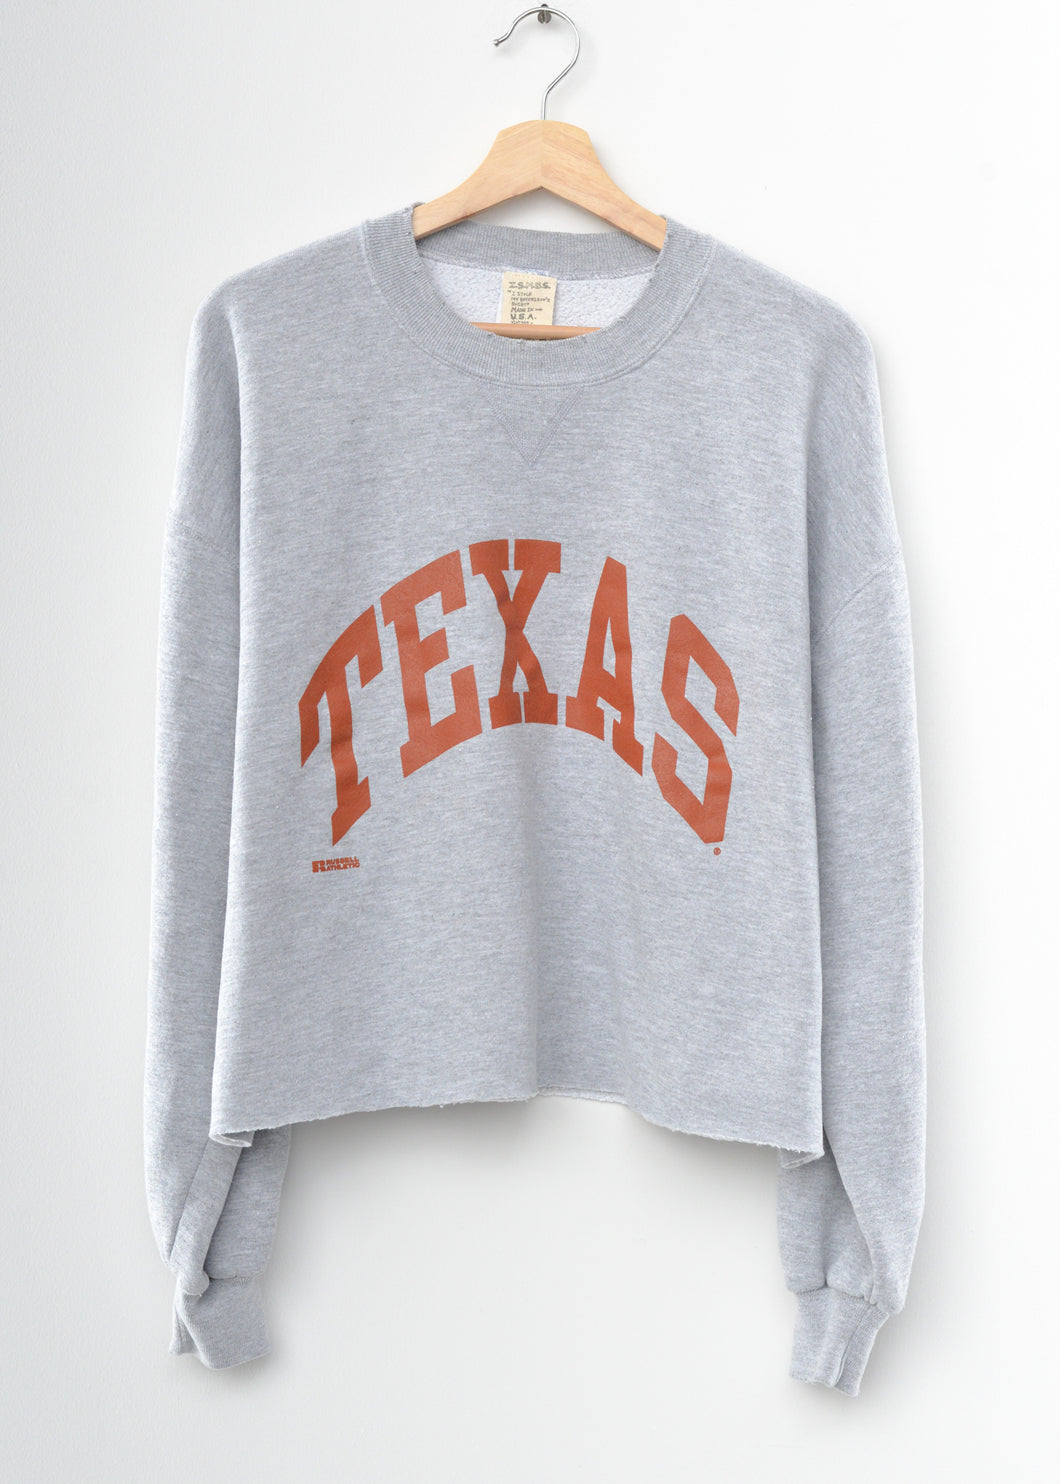 Texas Crop Sweatshirt